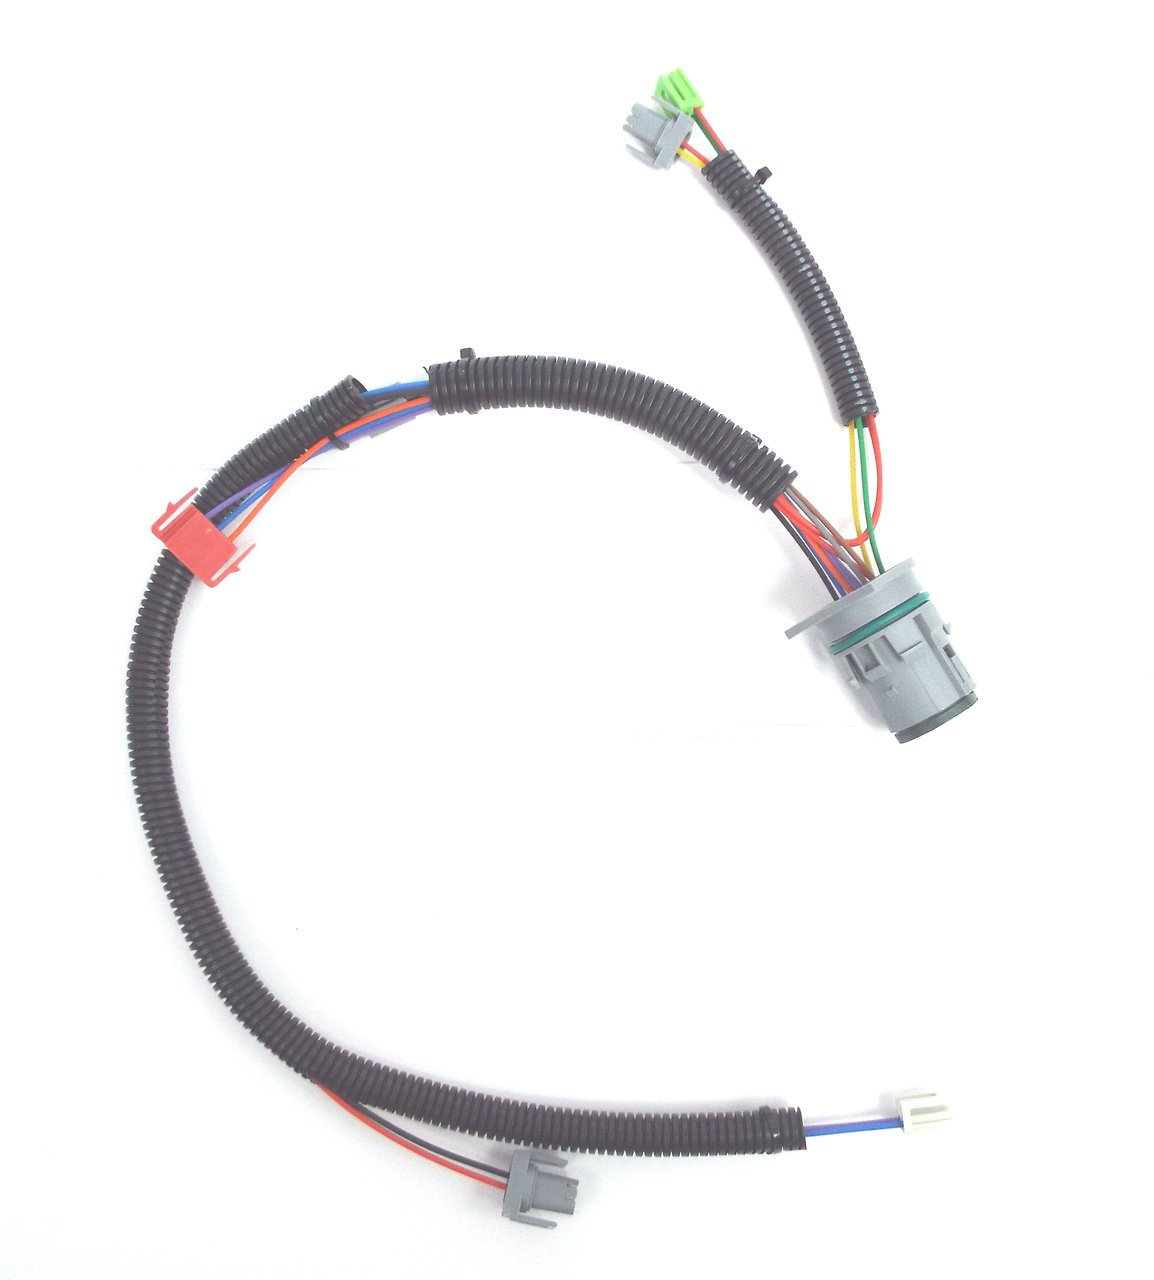 4l80e internal wiring harness 2004 up 24200161 global rh globaltransmissionparts com lq4 4l80e wiring harness 4l80e wiring harness differences